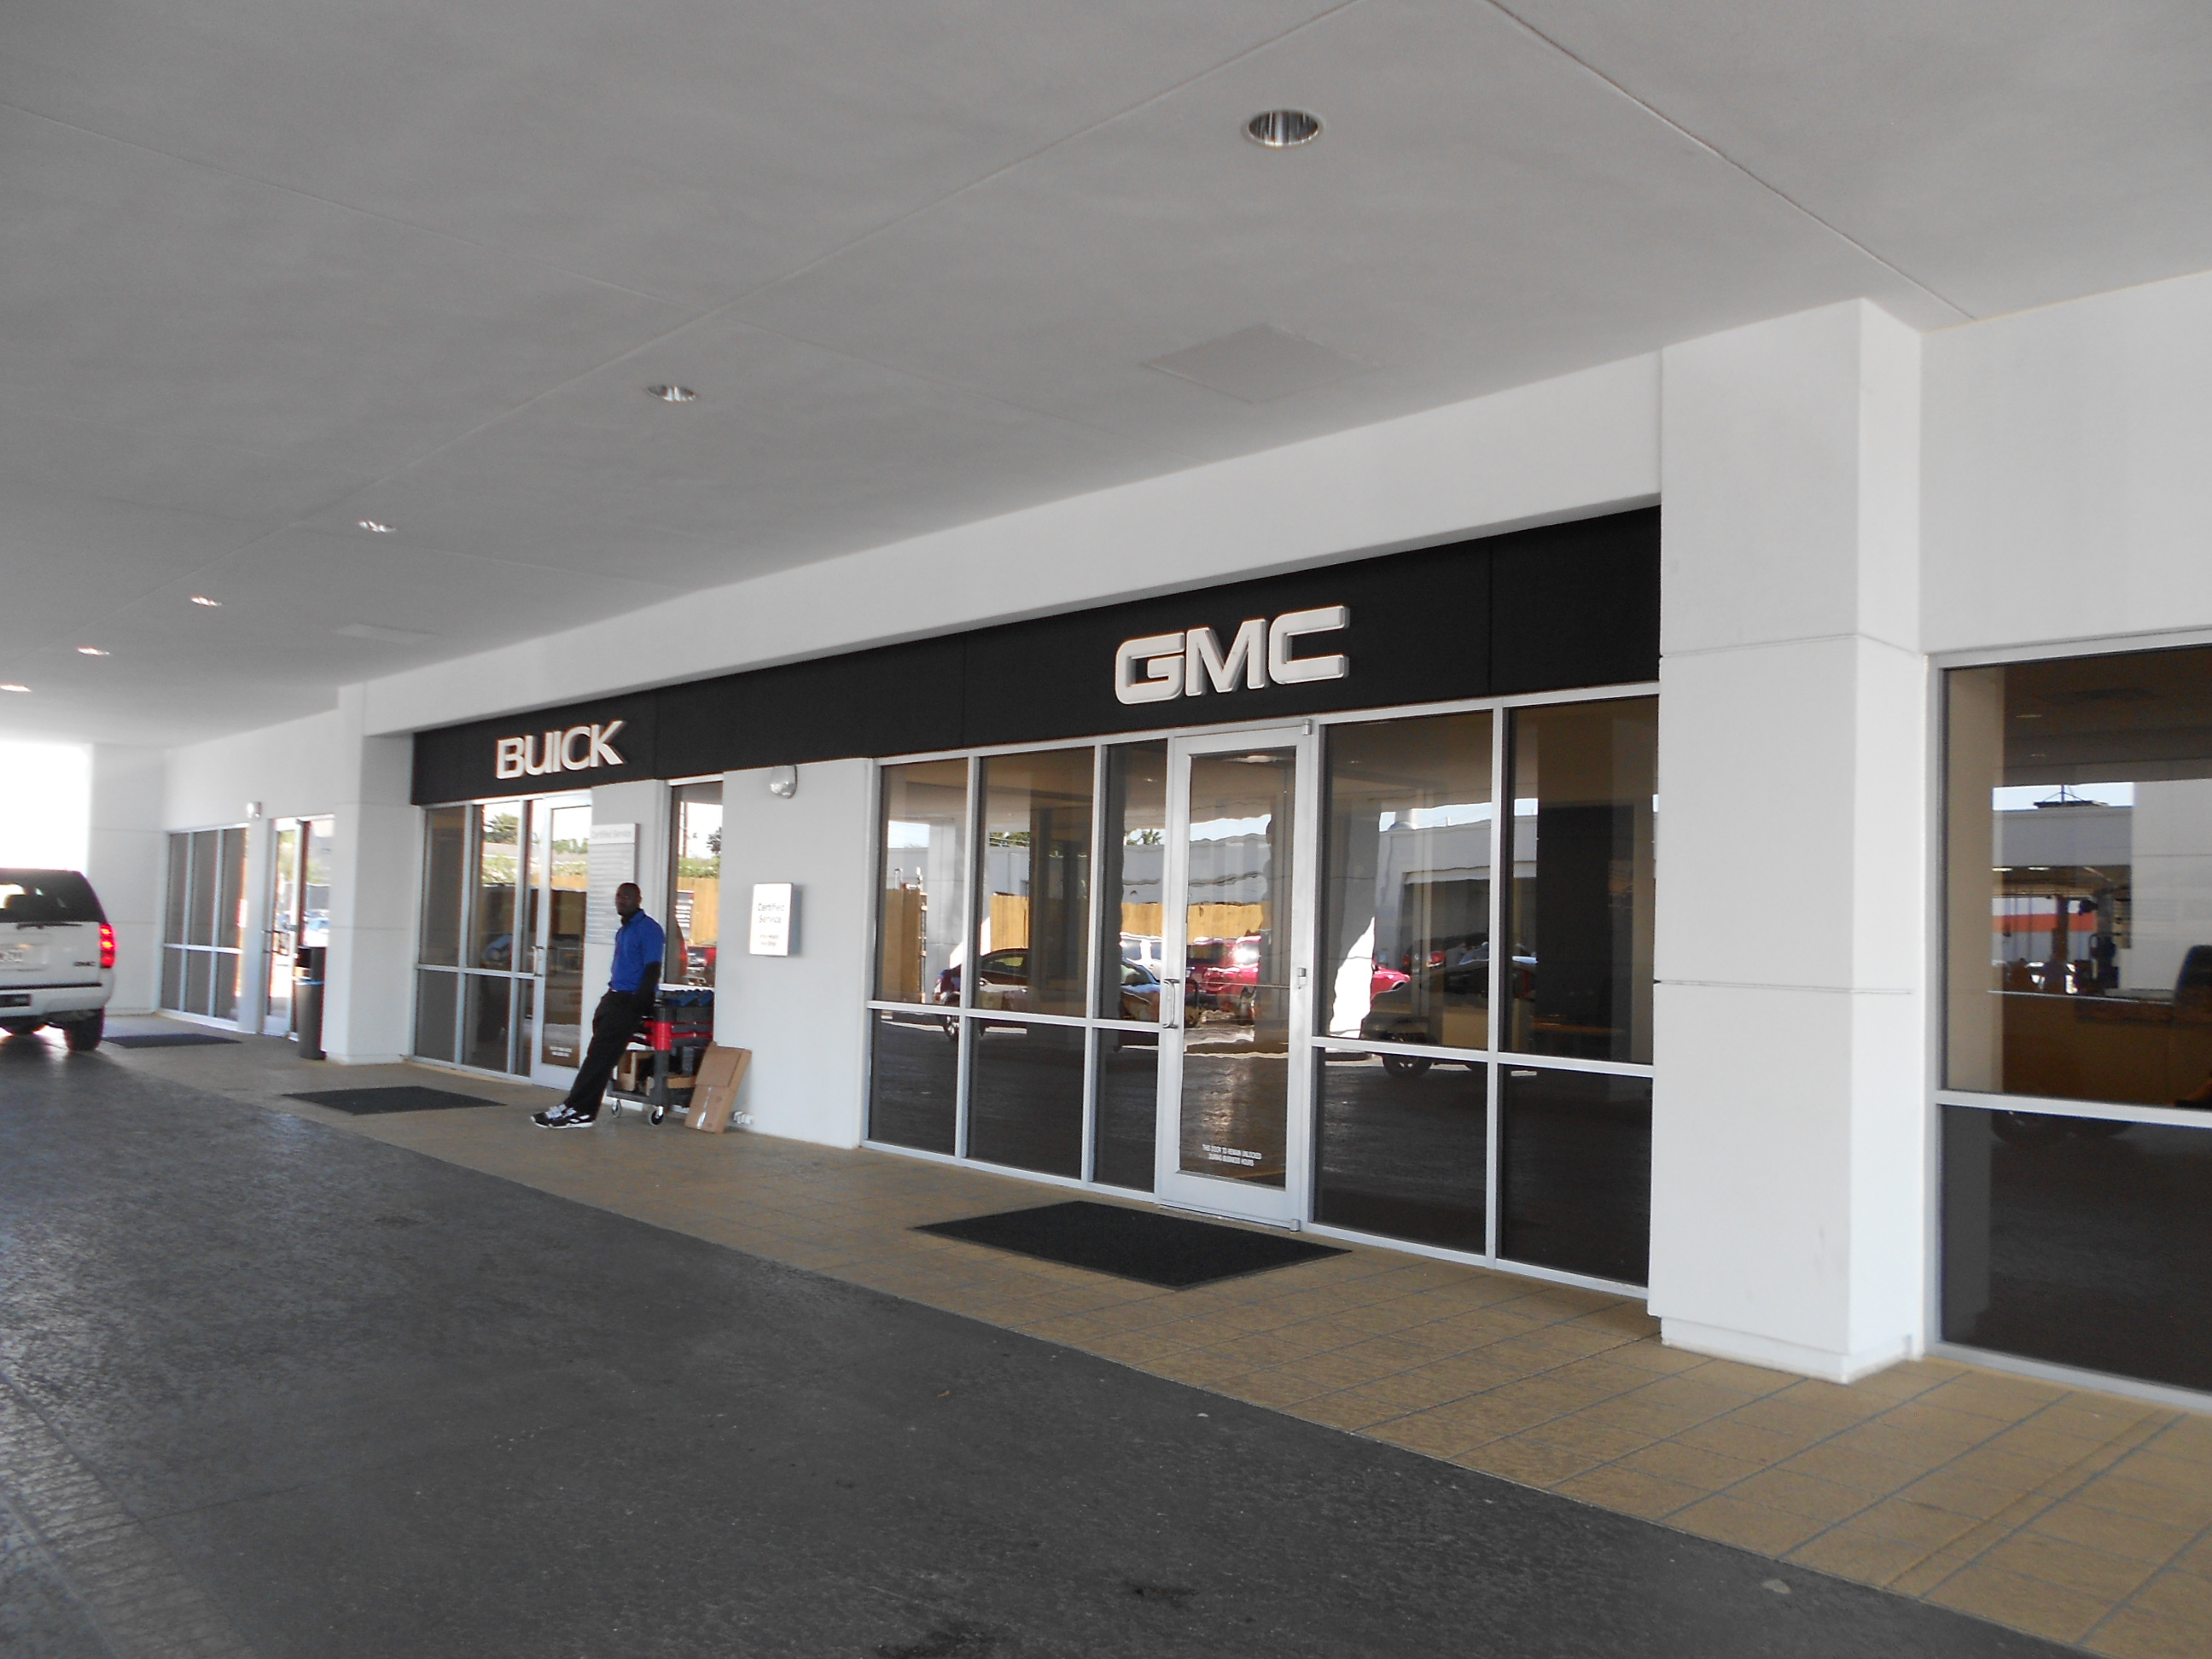 Sterling McCall Buick GMC image 6